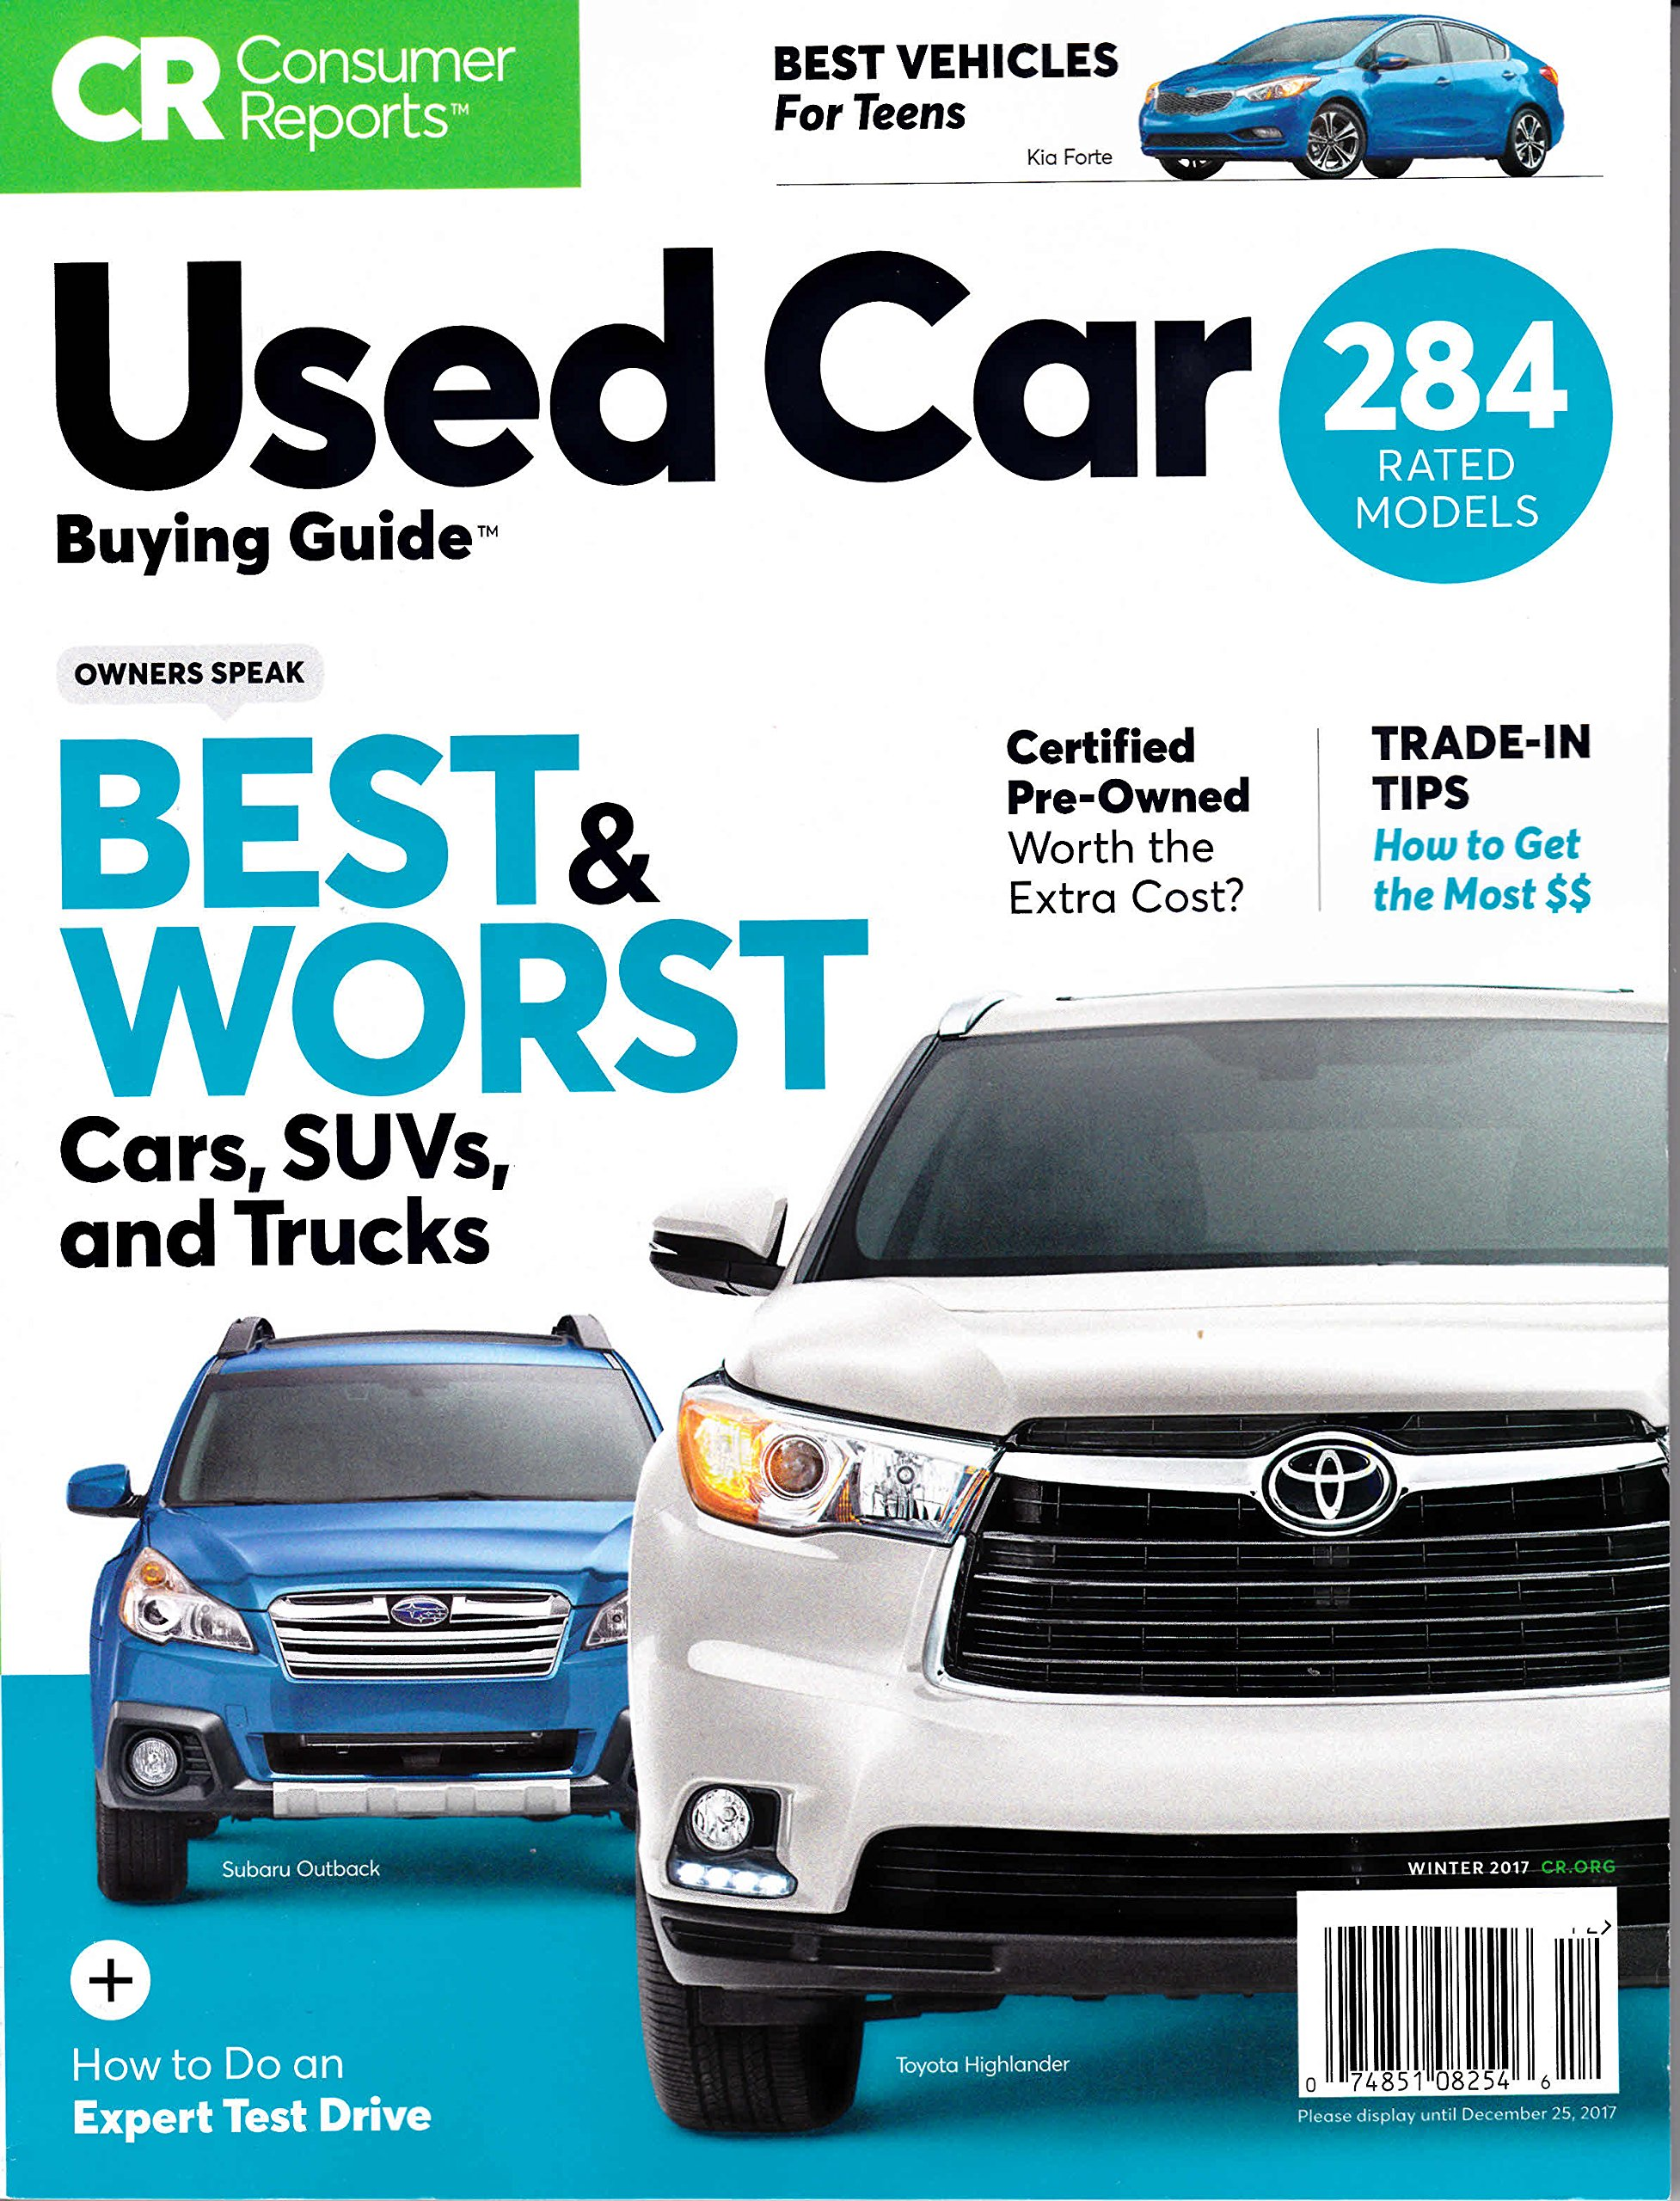 Used Car Buying Guide: Consumer Reports: 9780890438800: Amazon.com ...